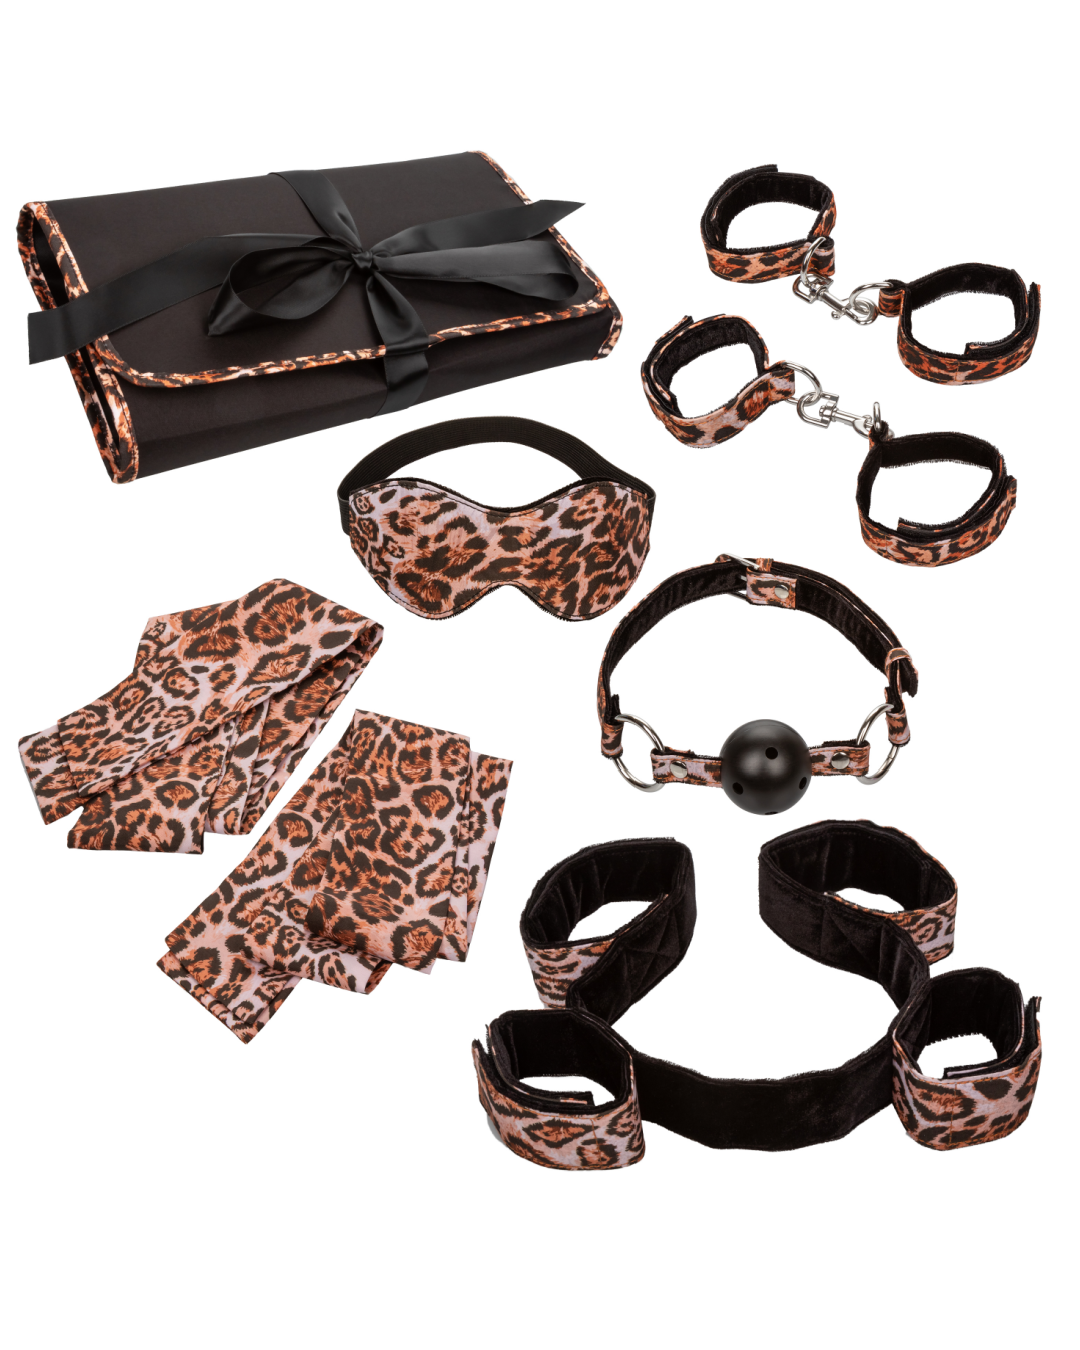 Unleashed Surrender 8 Piece Kink Set